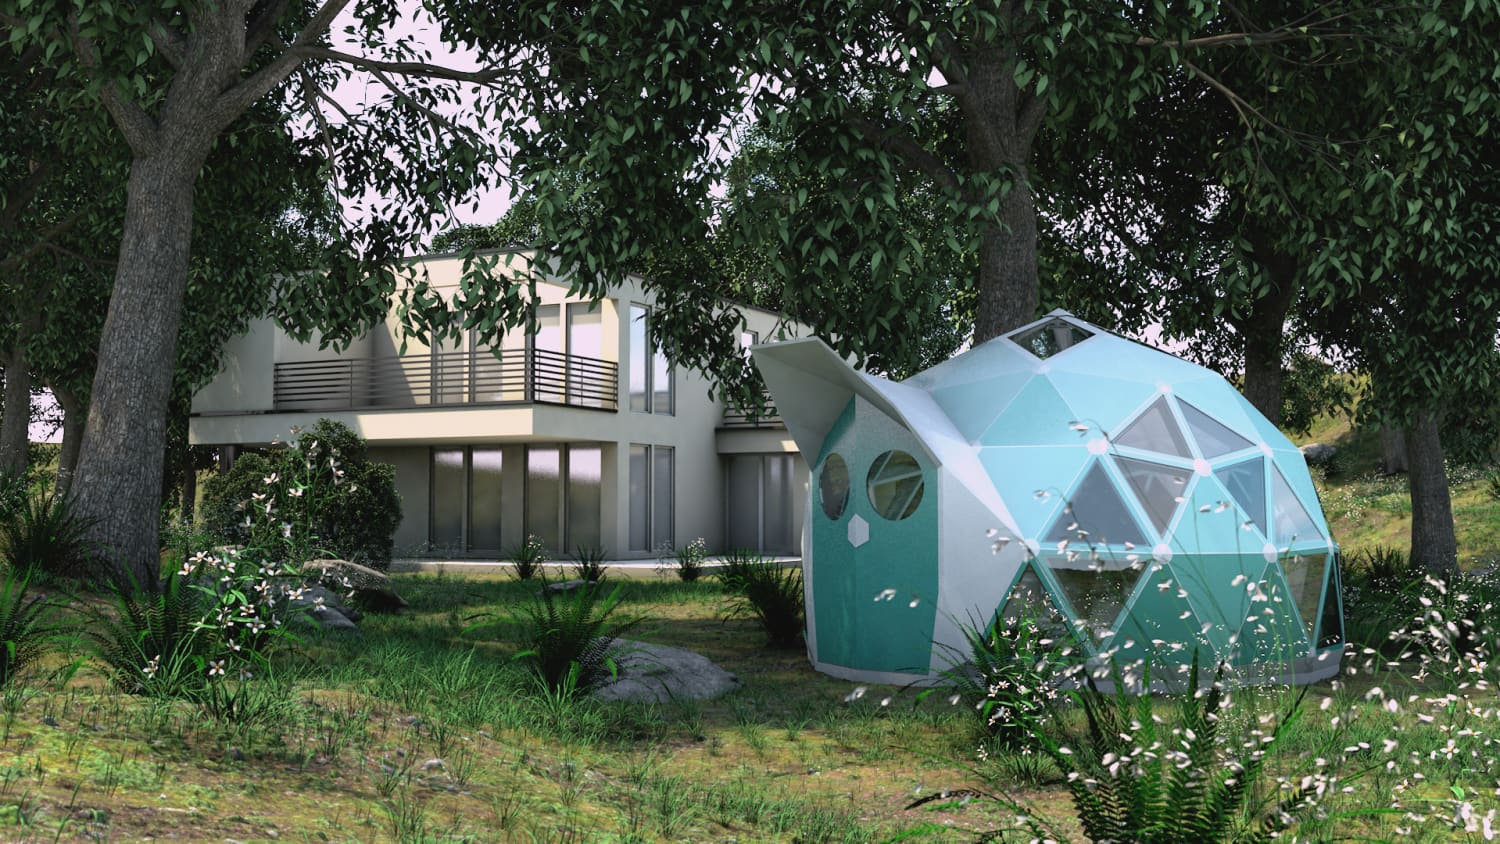 This Affordable Tiny Dome Is An Example of What Zero-Carbon Living Could Look Like